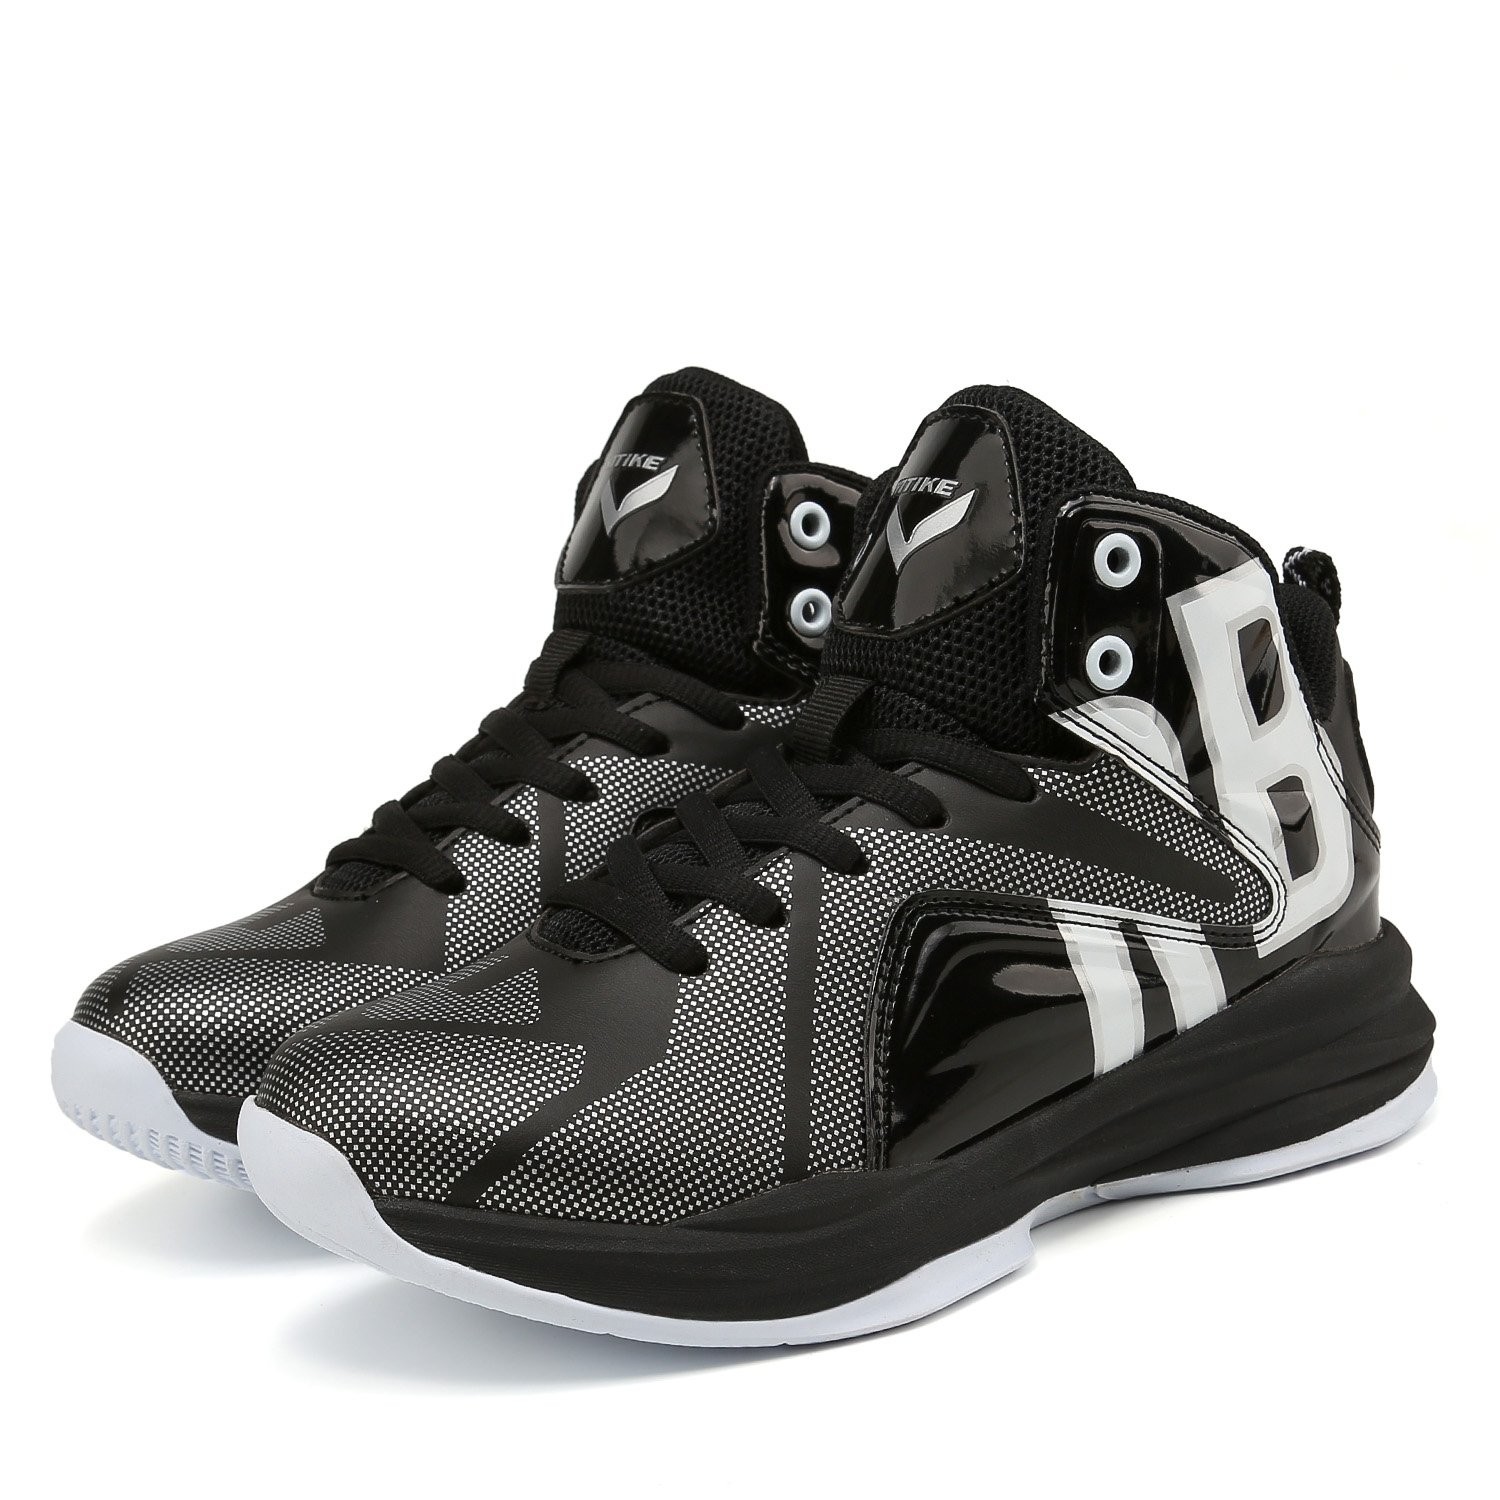 Little Kid//Big Kid 13M US Little Kid, Armor Black WETIKE Kids Basketball Shoes High-Top Sneakers Outdoor Trainers Durable Sport Shoes